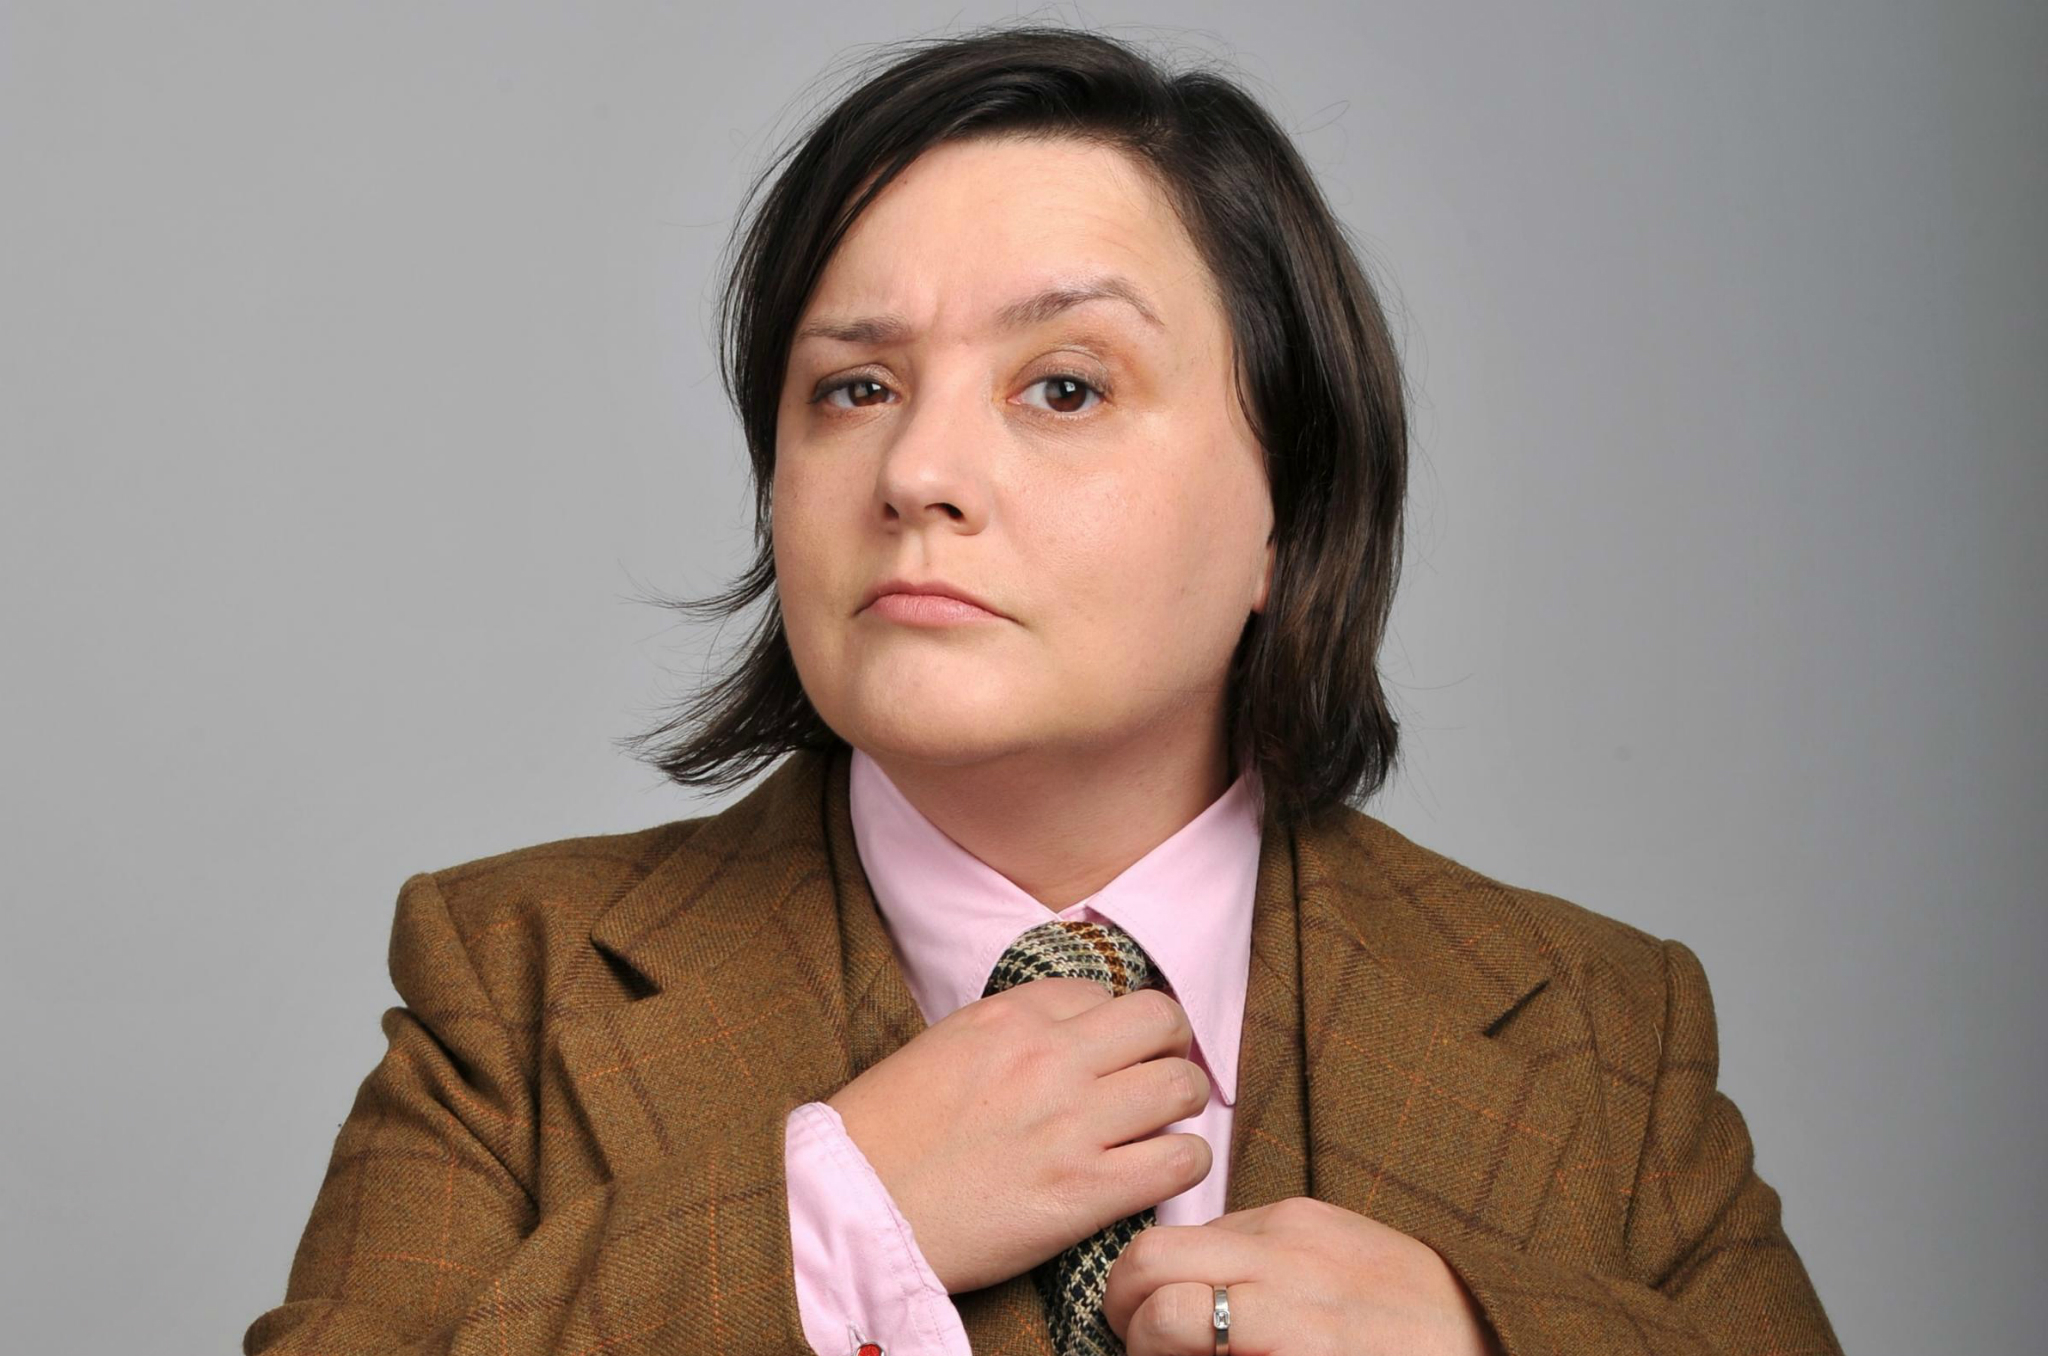 Susan Calman – Lady Like